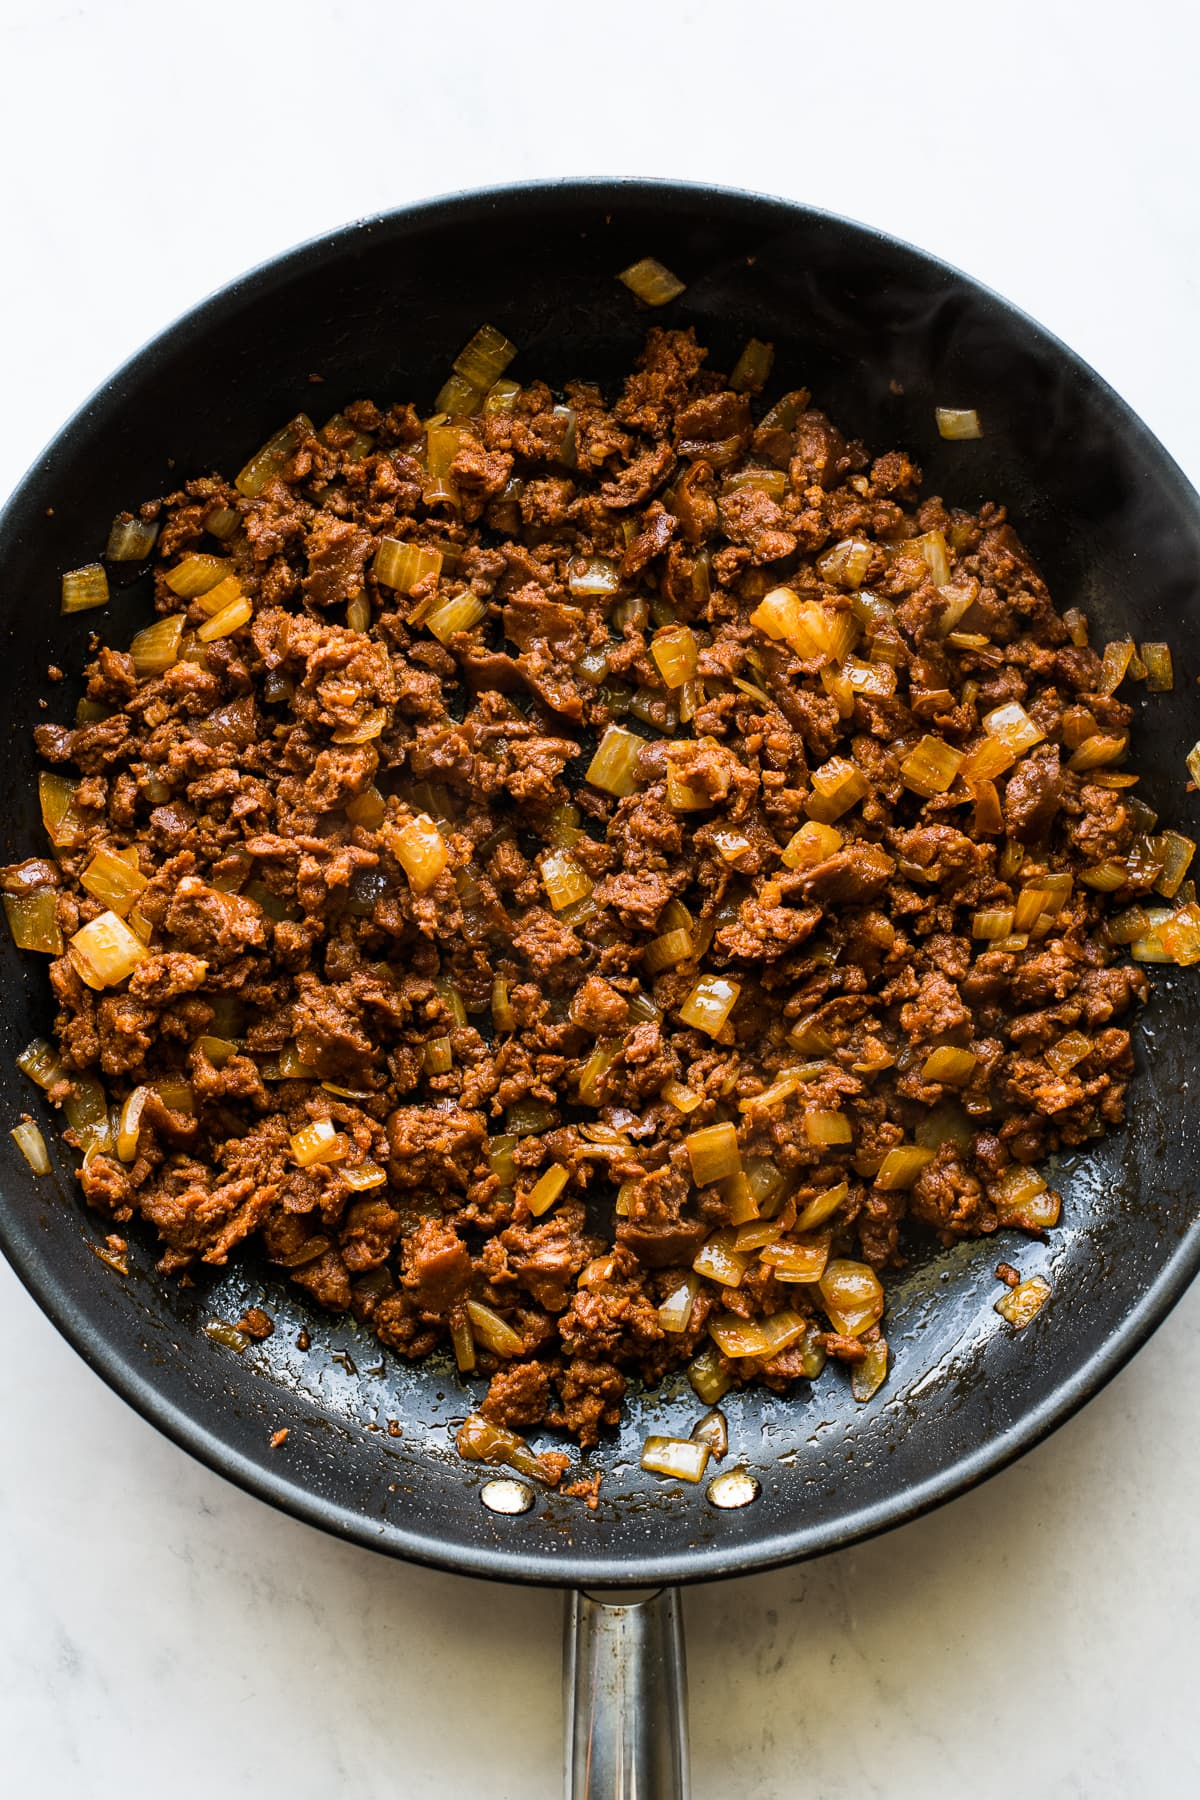 Cooked chorizo and onions in a skillet.